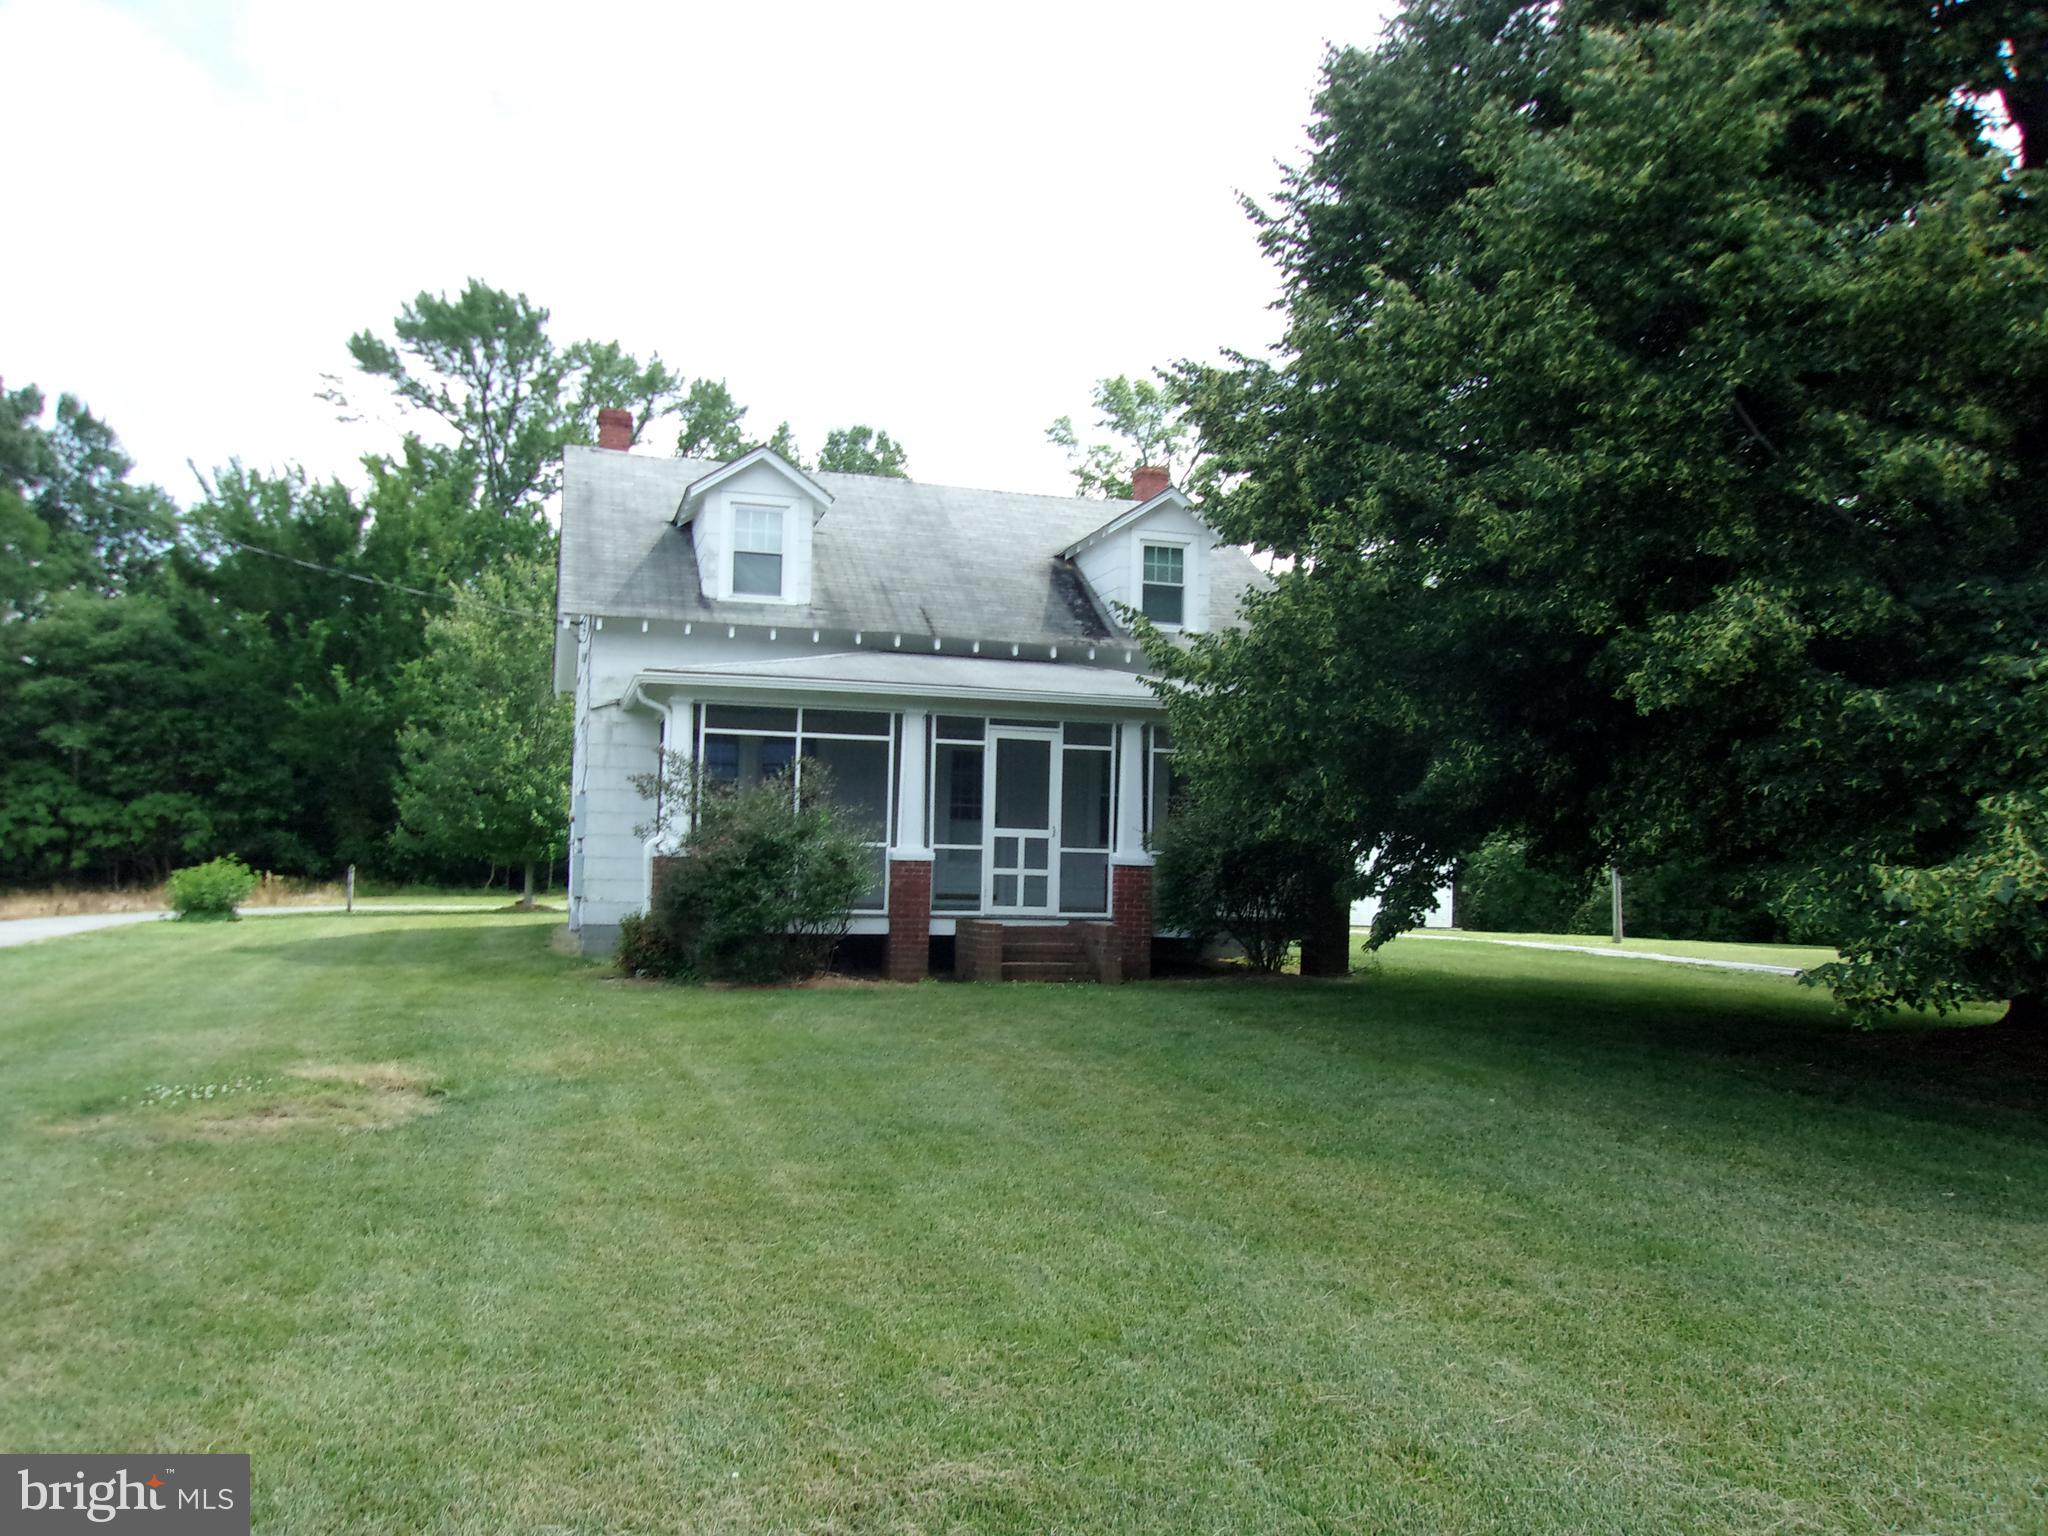 Very nicely maintained home on 4 acres.   Features include hardwood floors, enclosed sun porch, screened front porch, and sizable living room and separate dining room.   There is an unfinished basement and 3 outbuildings for additional storage space.  The home was rewired in 2005, a new furnace added in 2005, new roof on garage in 2013,  and new garage door with remote in 2018. An outstanding opportunity to live near Nomini Creek at an affordable price.